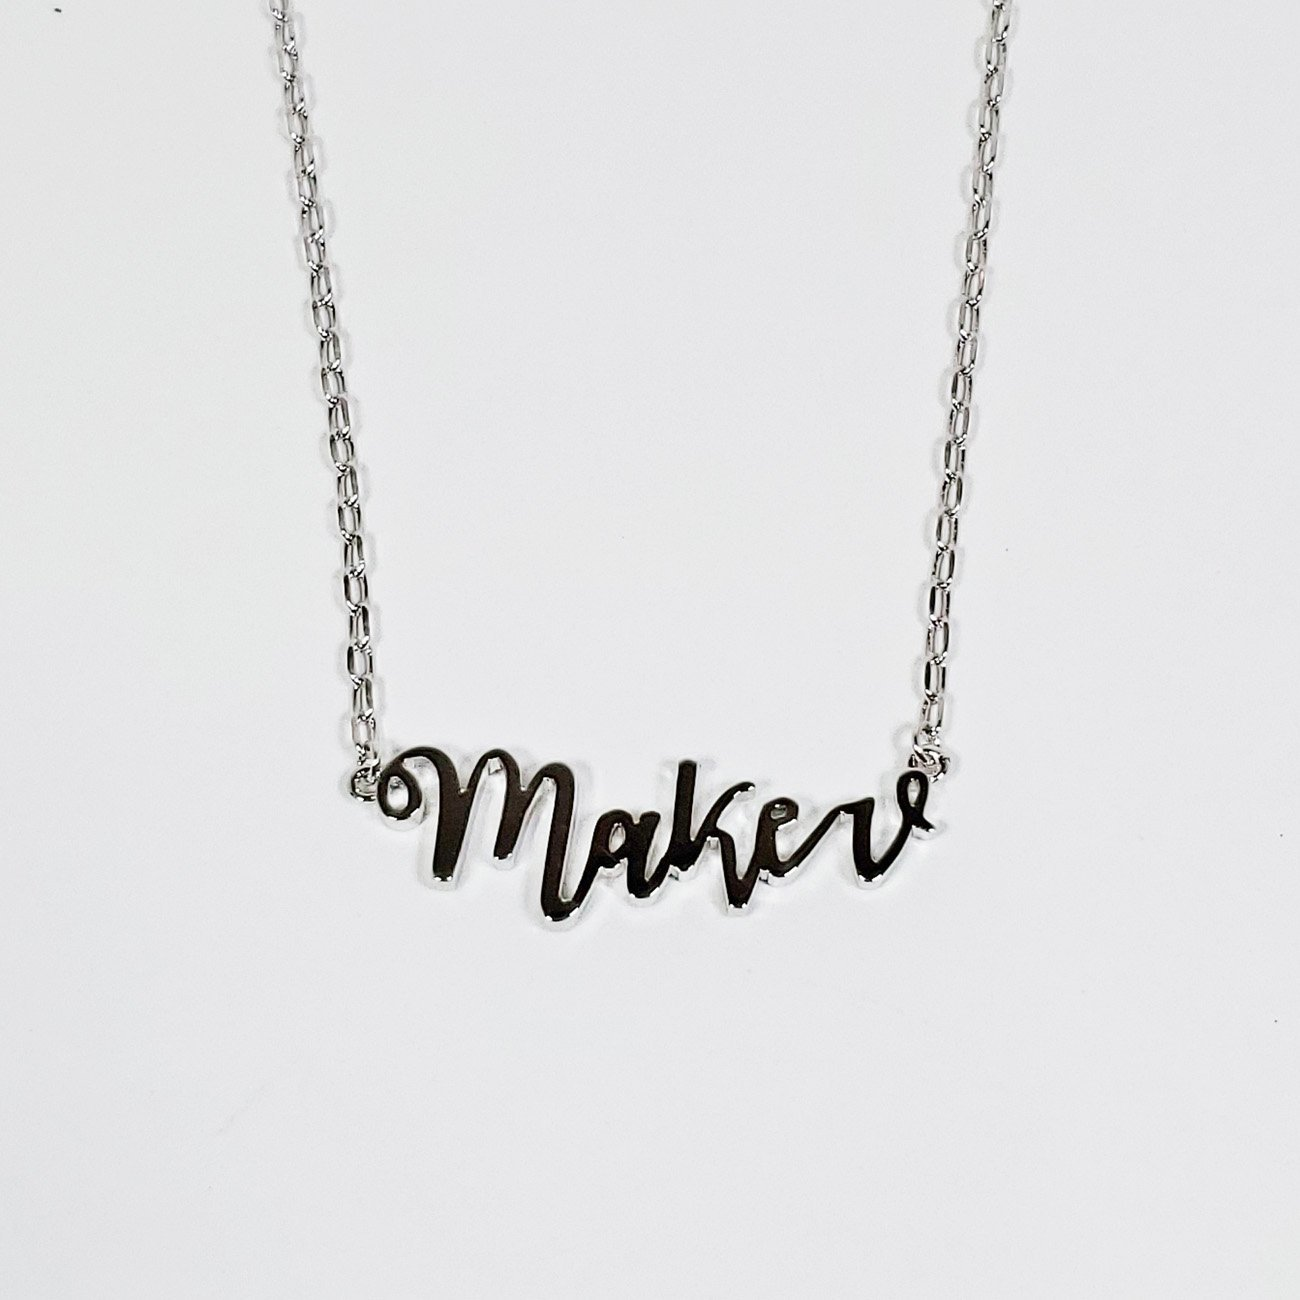 Maker - Necklace - Silver